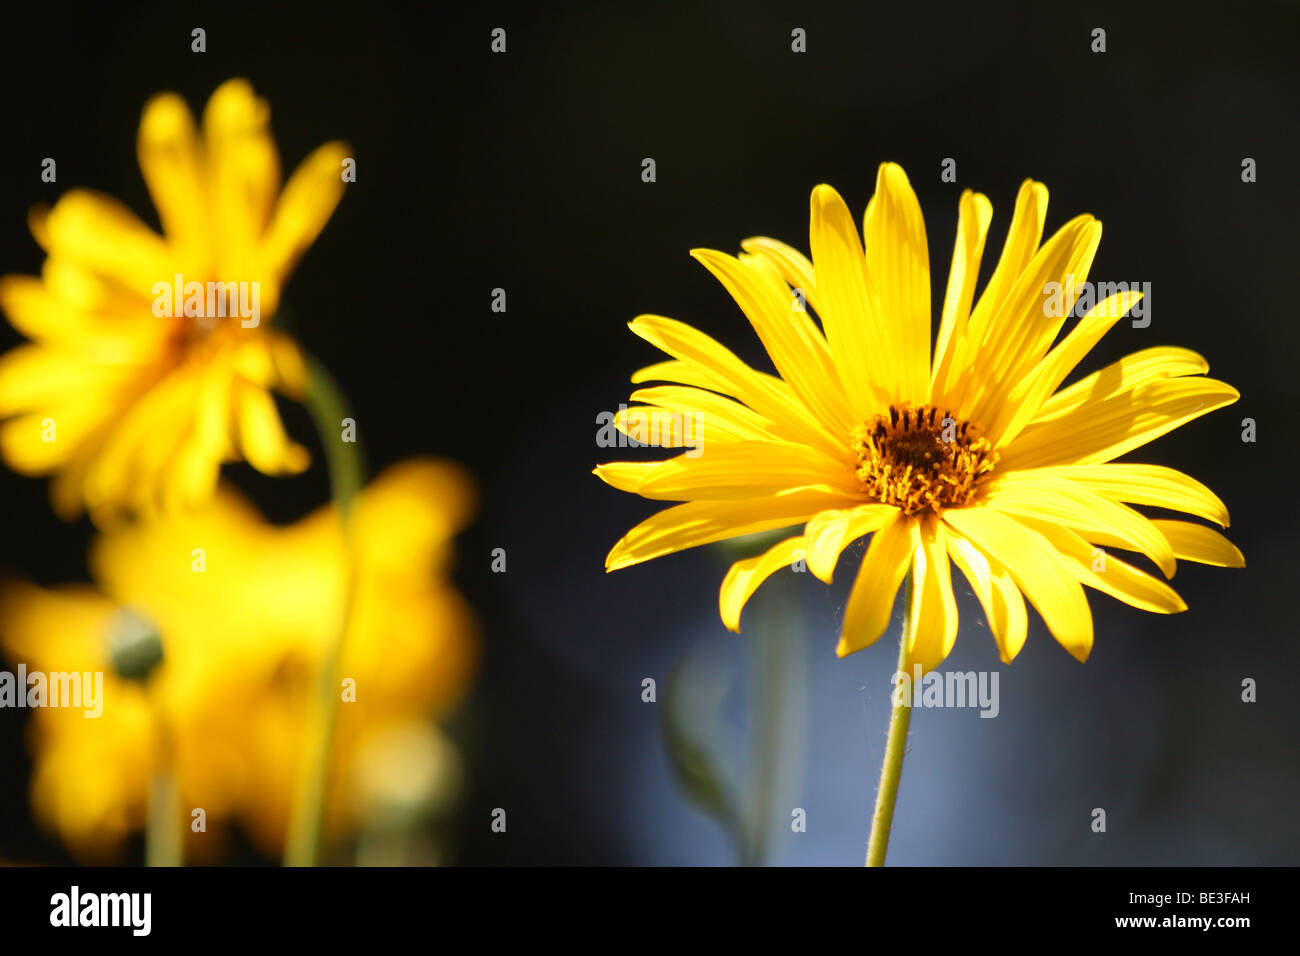 Yellow daisy type flower stock photo royalty free image 25893465 stock photo yellow daisy type flower dhlflorist Images